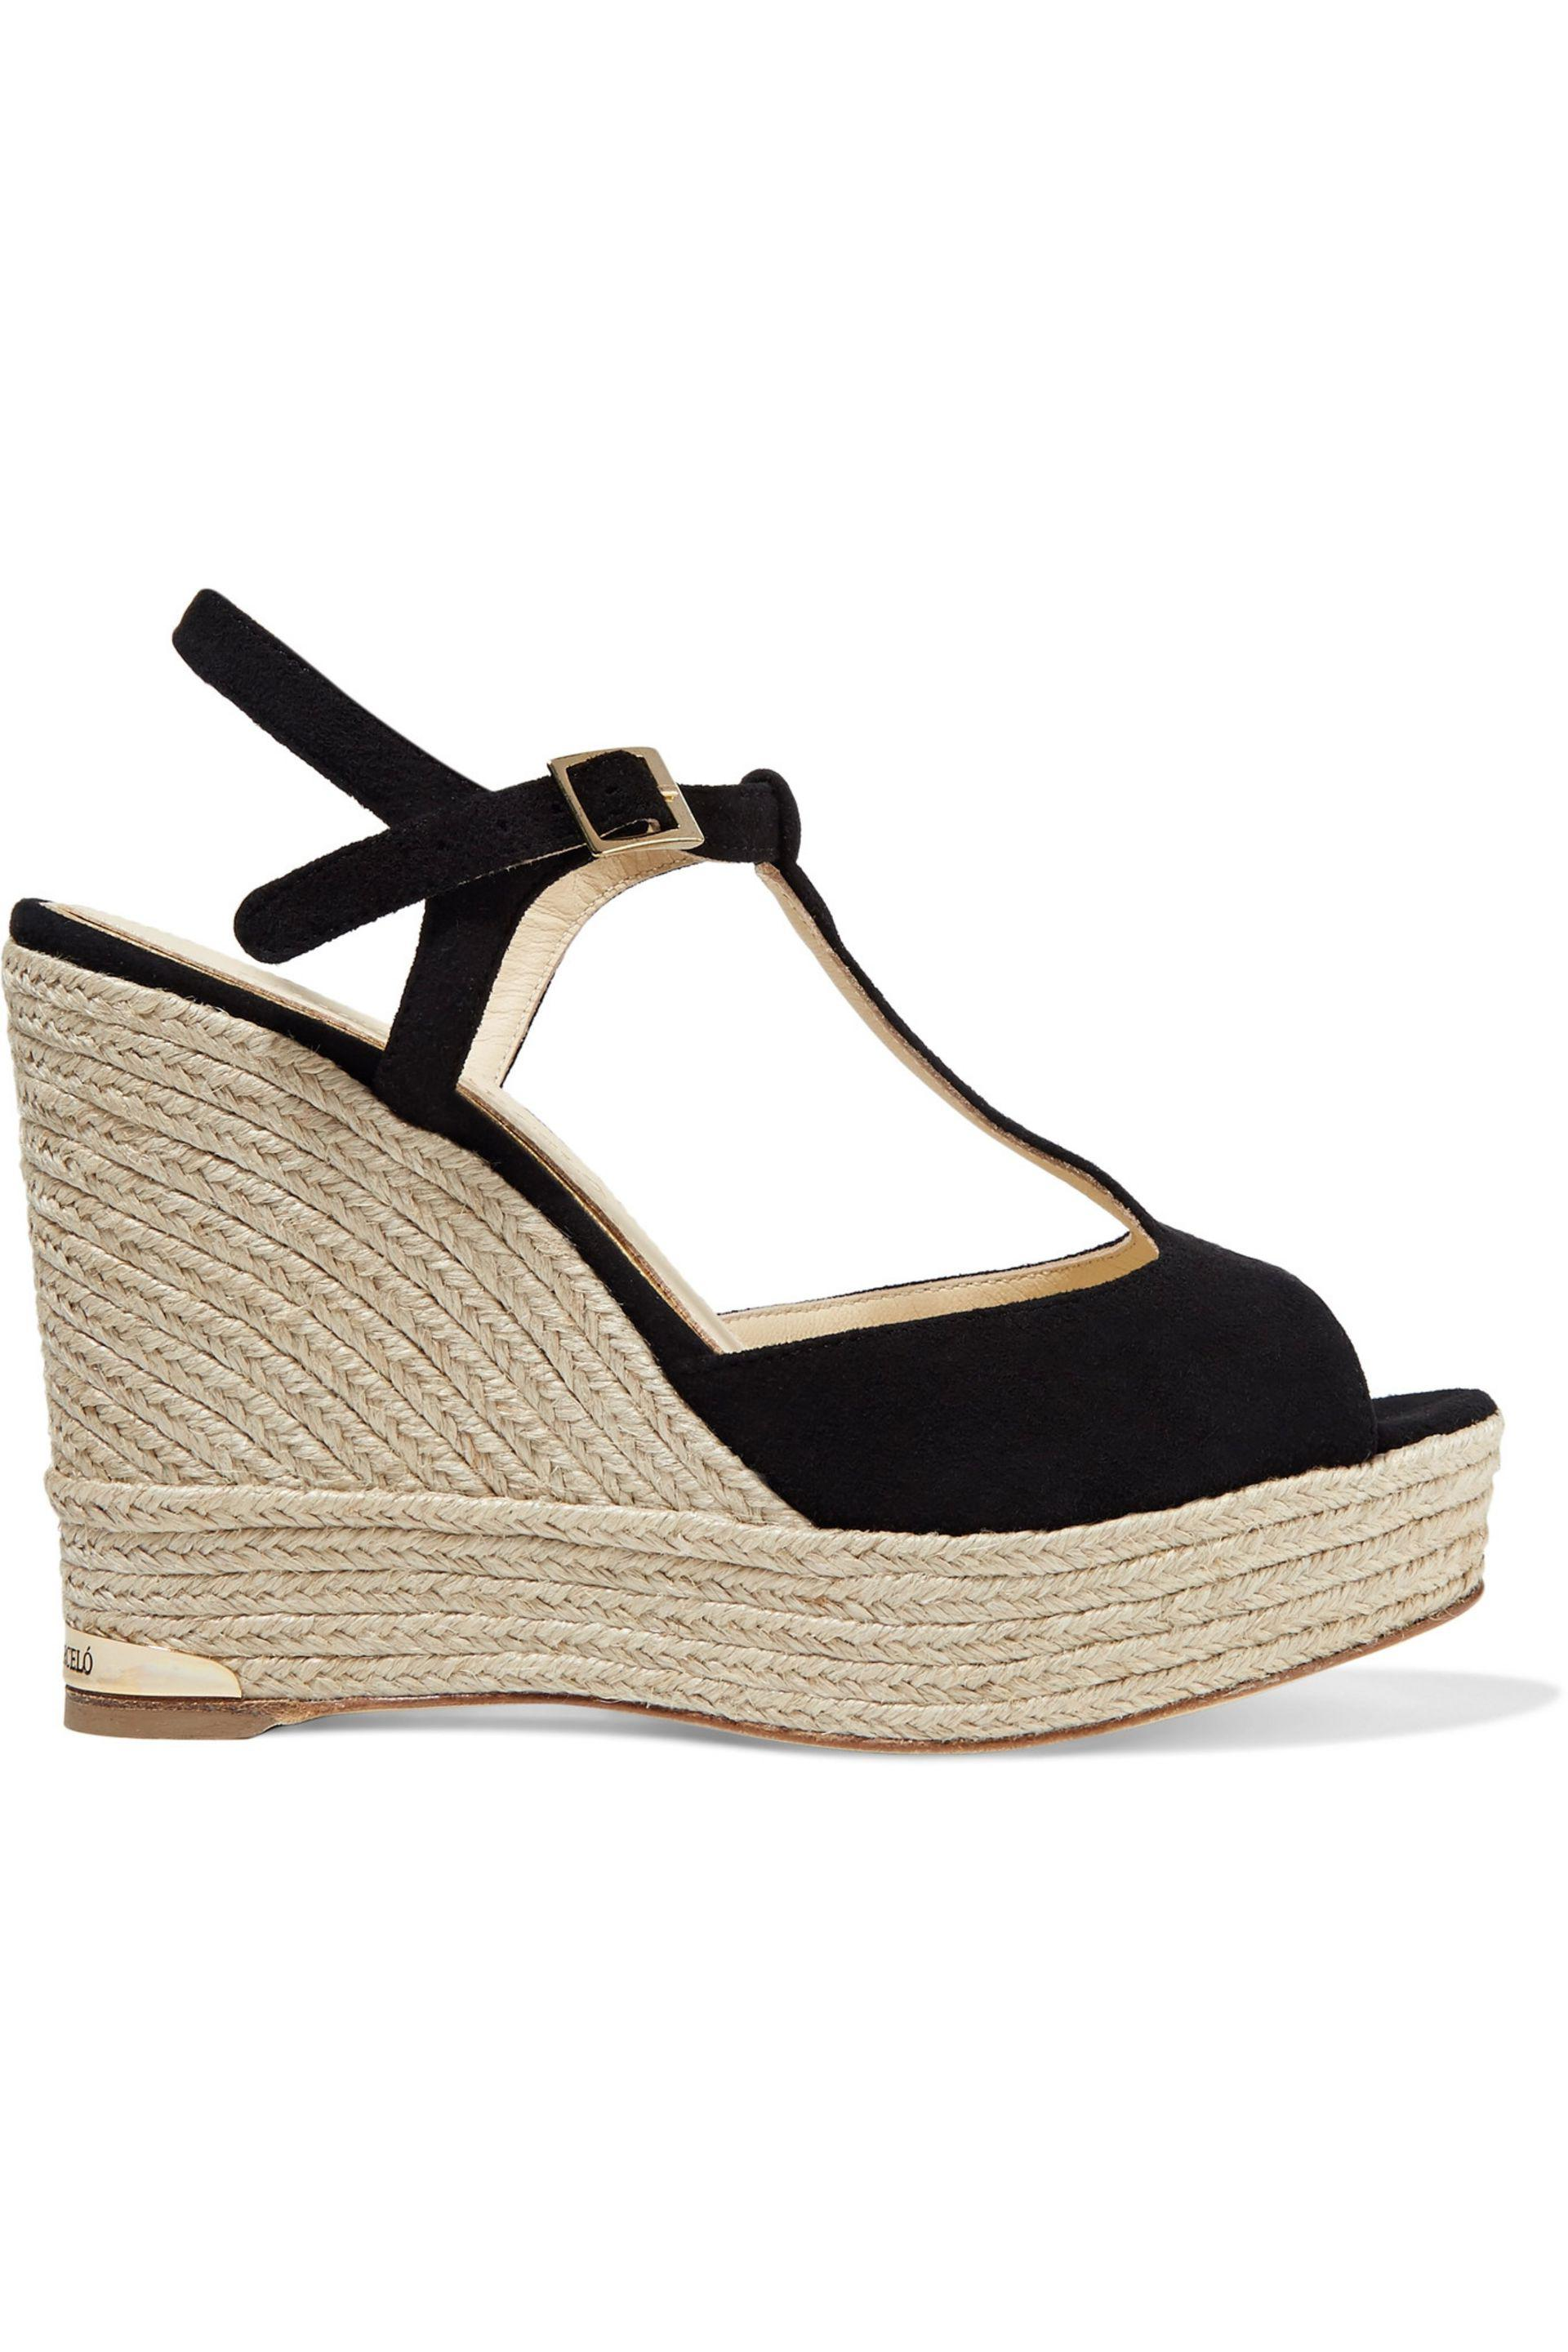 Paloma Barceló Paloma Barceló Woman Colette Knotted Suede Wedge Sandals Size 40 BZrMrA